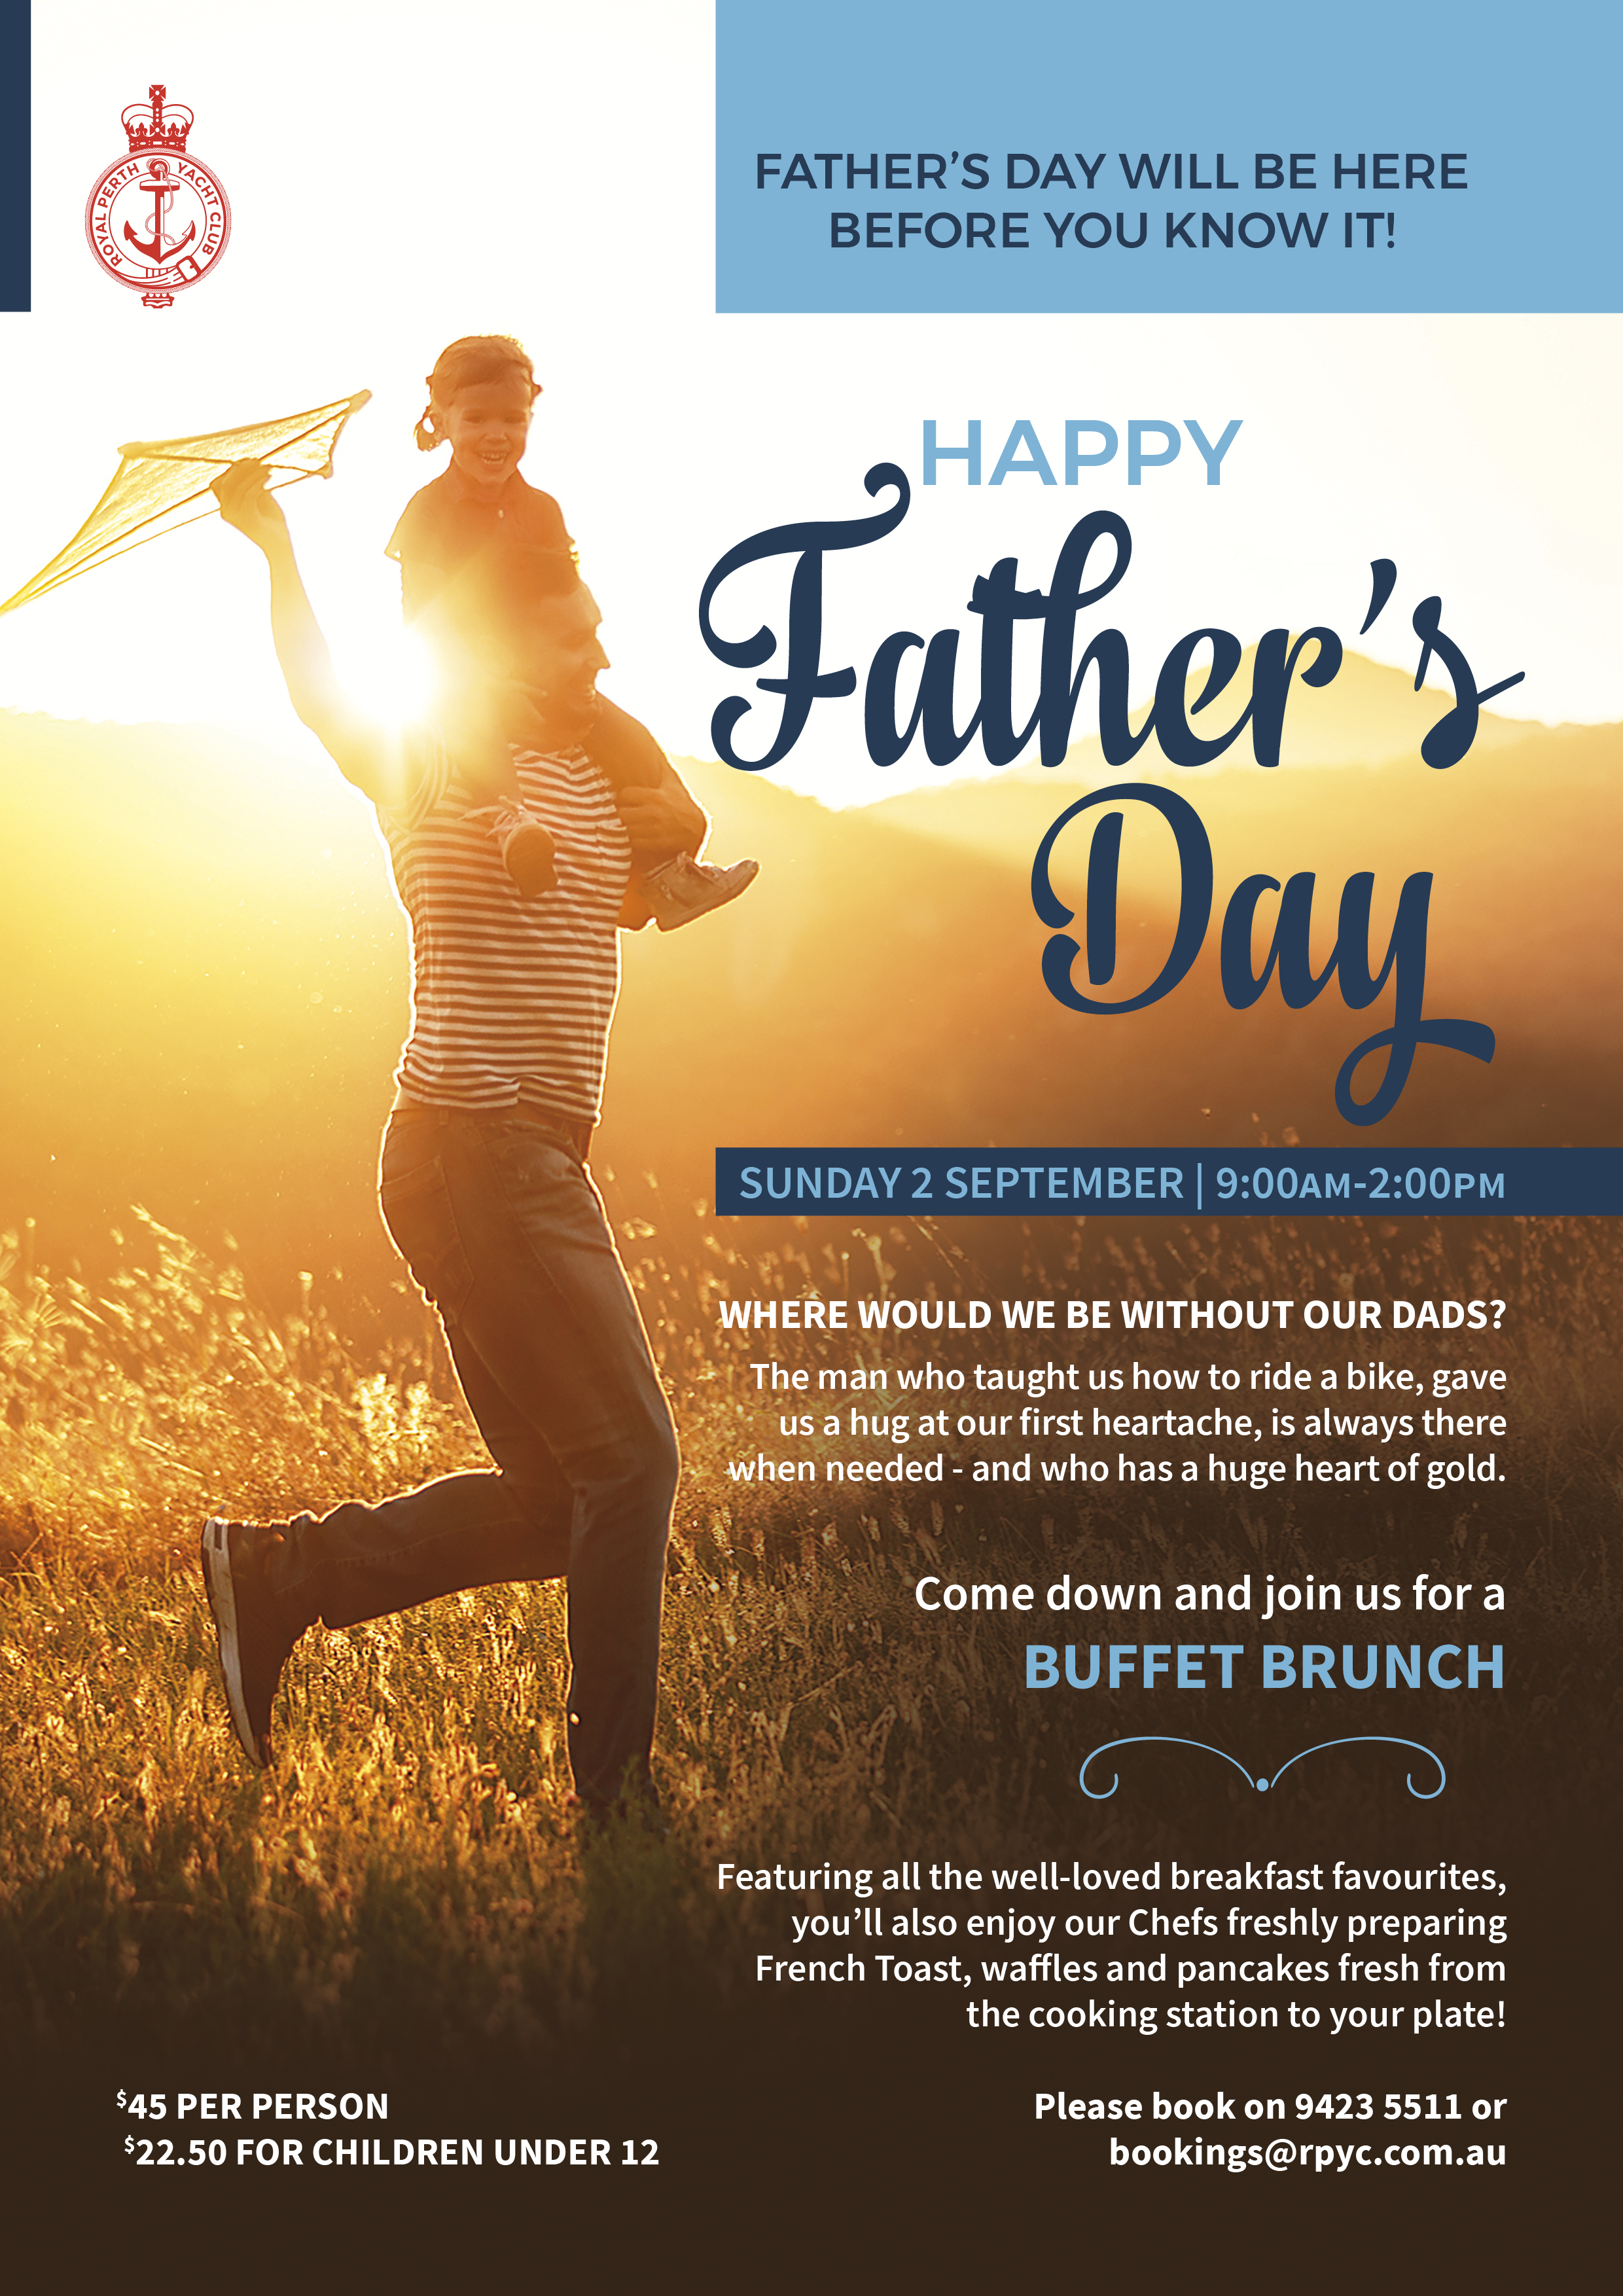 ITW July 2018 Fathers Day